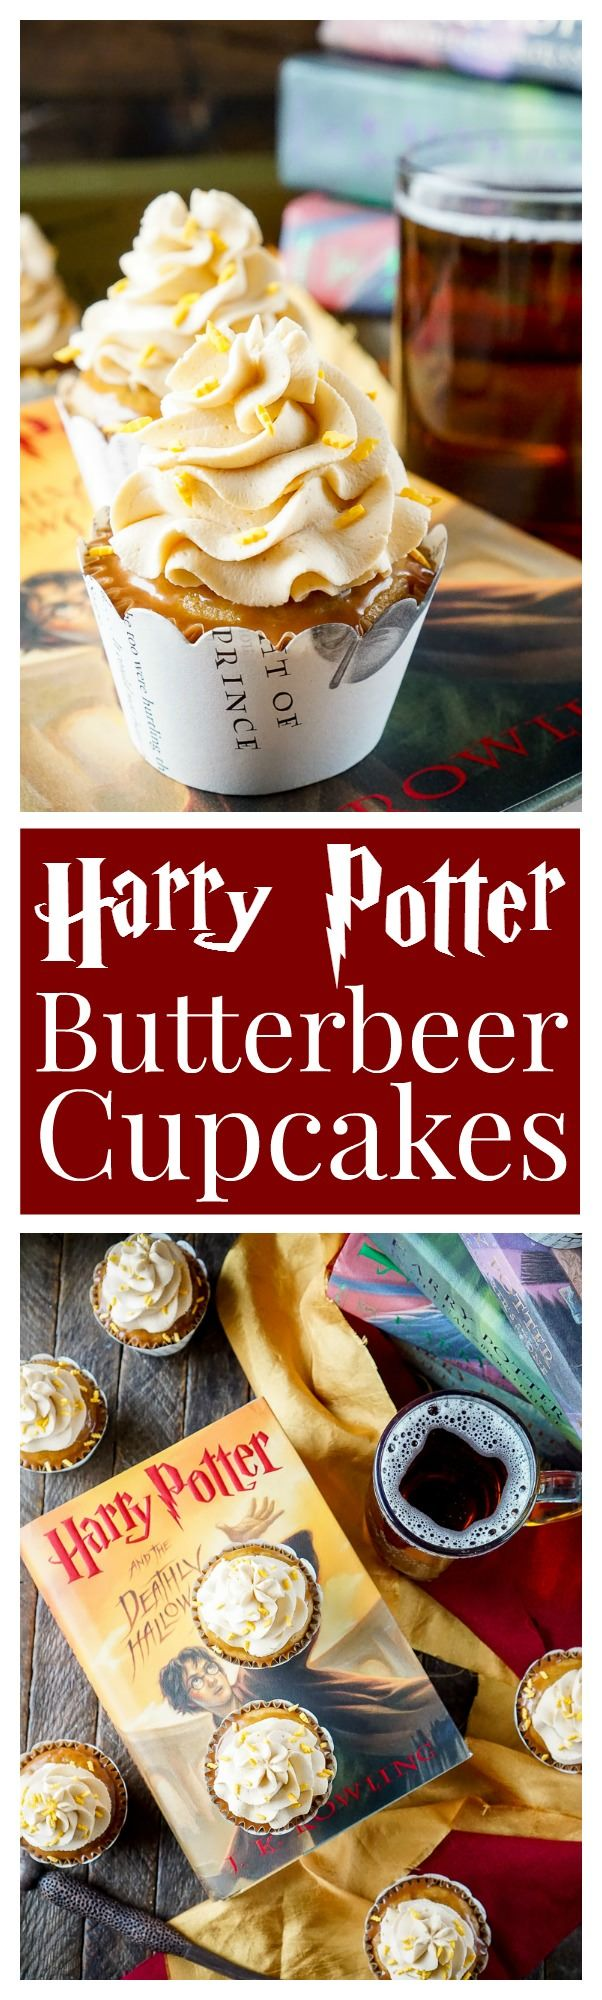 Magical Harry Potter Butterbeer Cupcakes